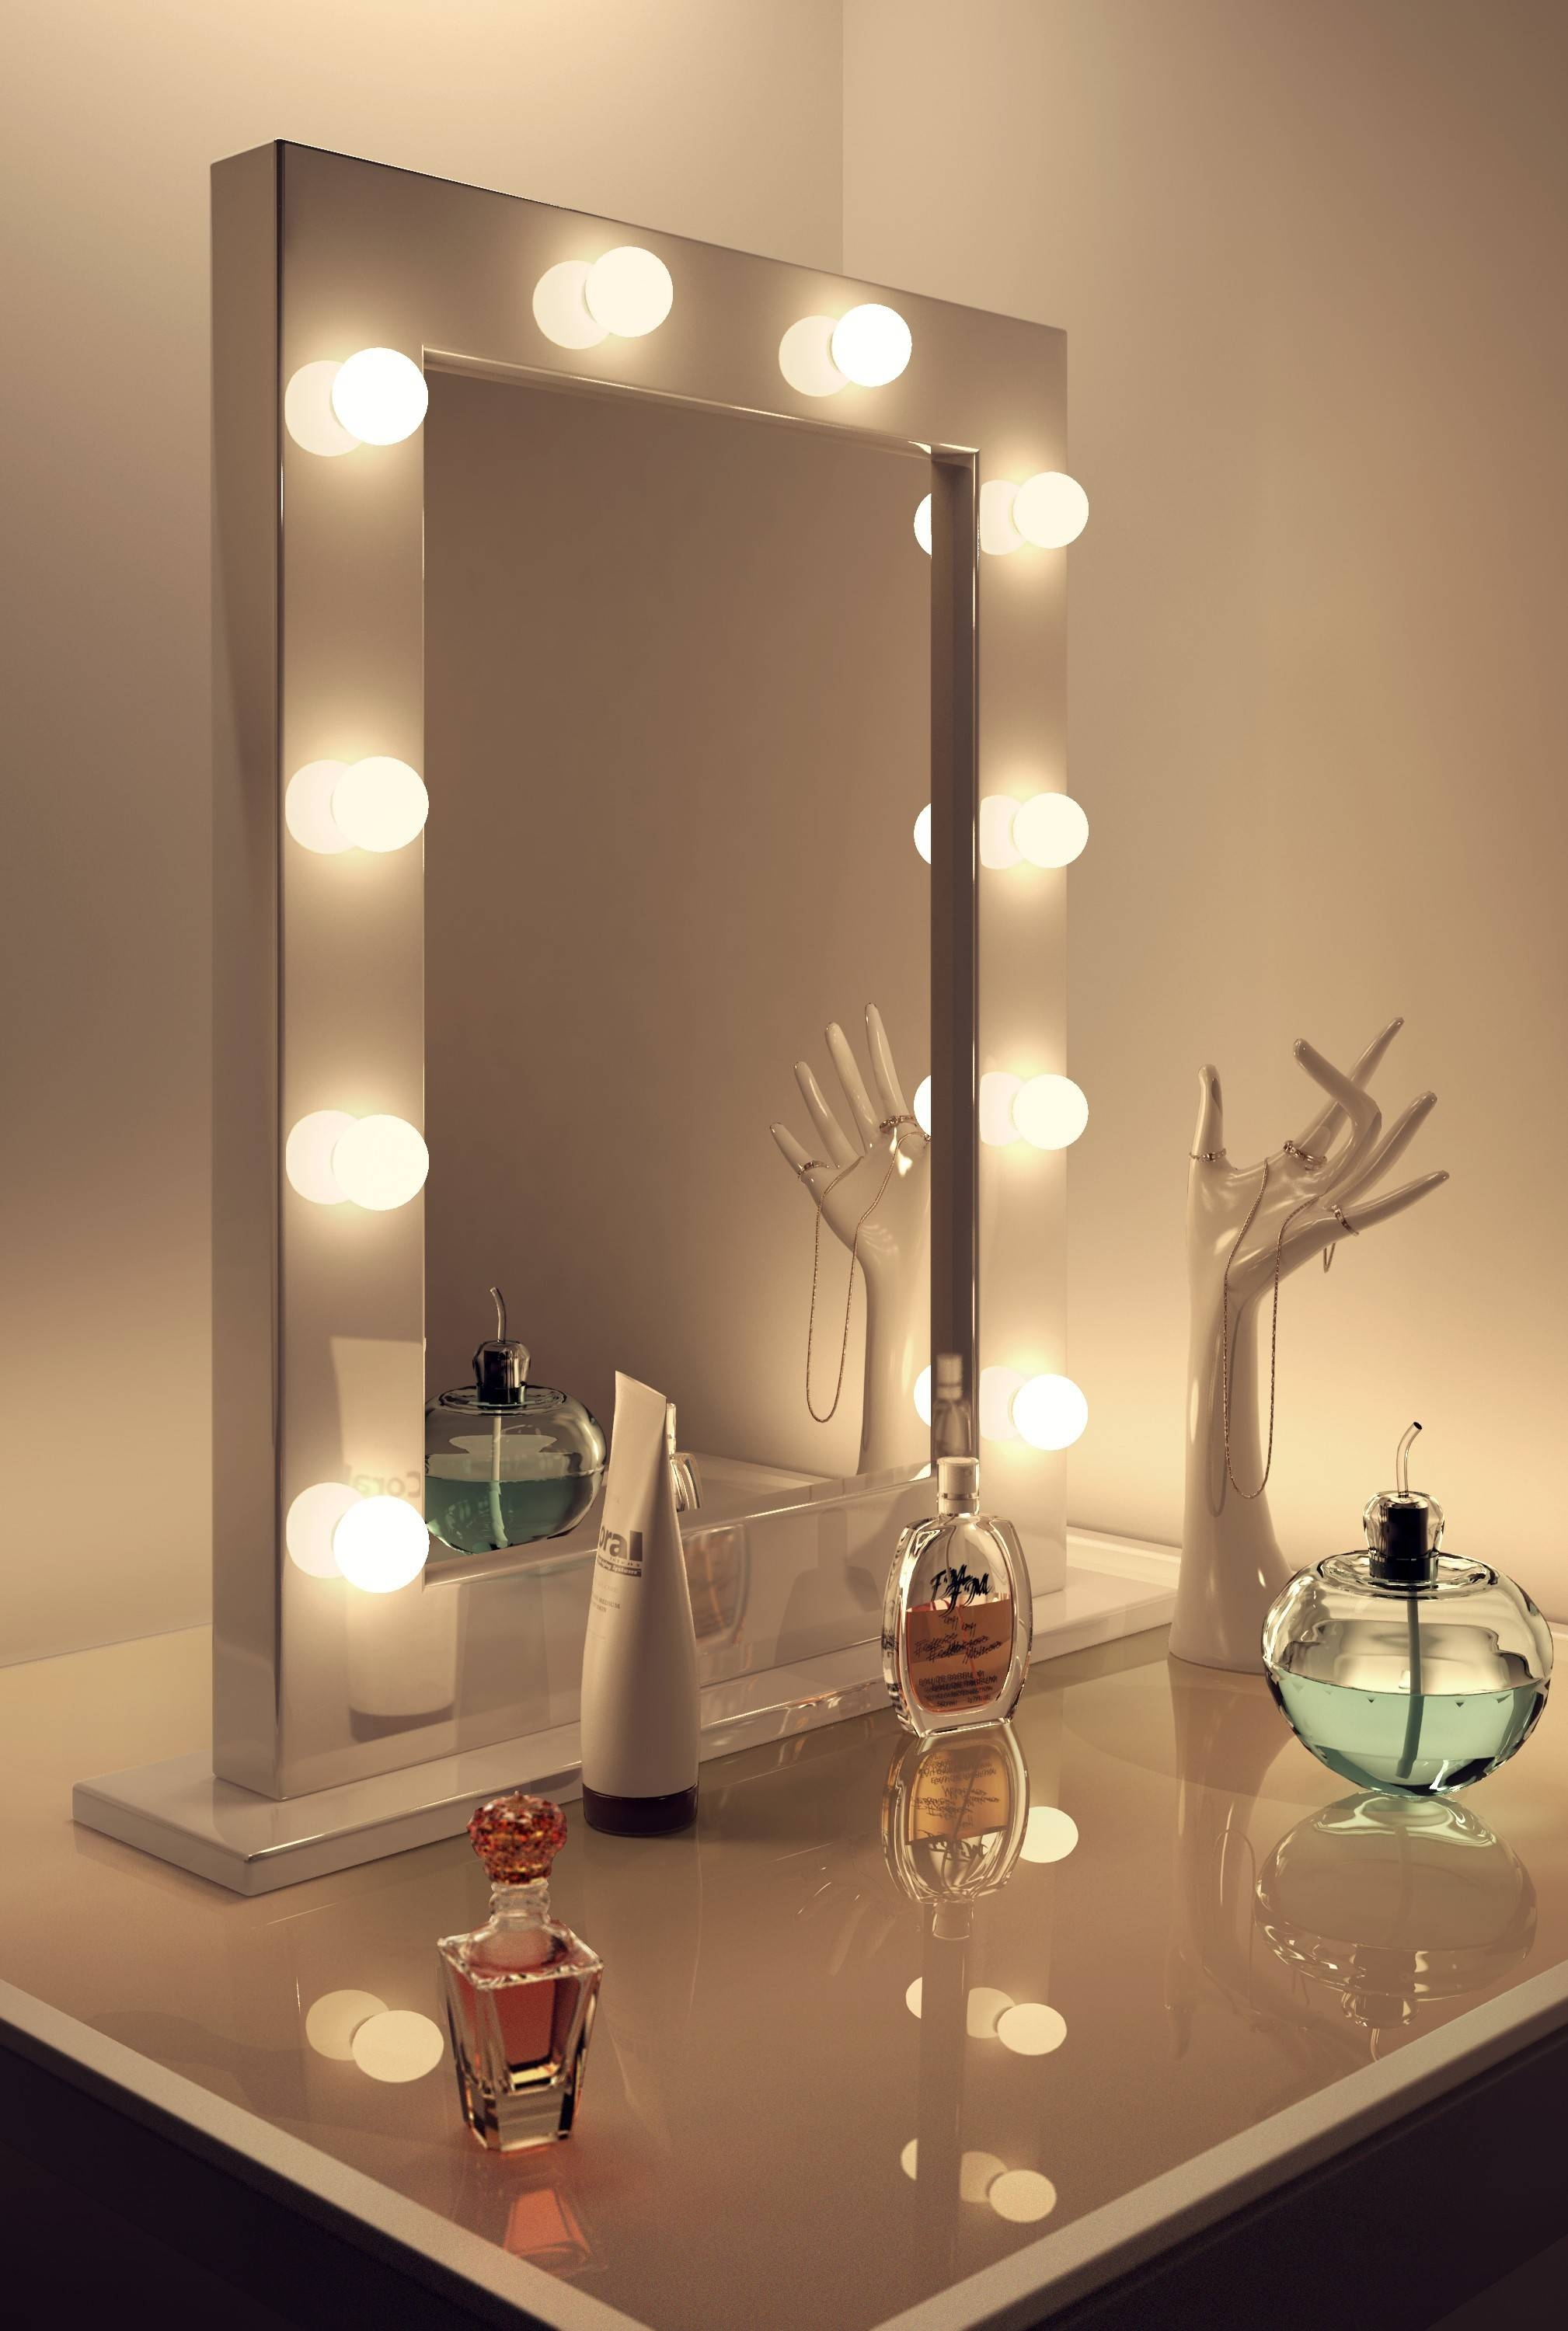 Wall Mirrors With Lights 114 Cool Ideas For Home Lighted Mirror within Interesting Wall Mirrors (Image 23 of 25)